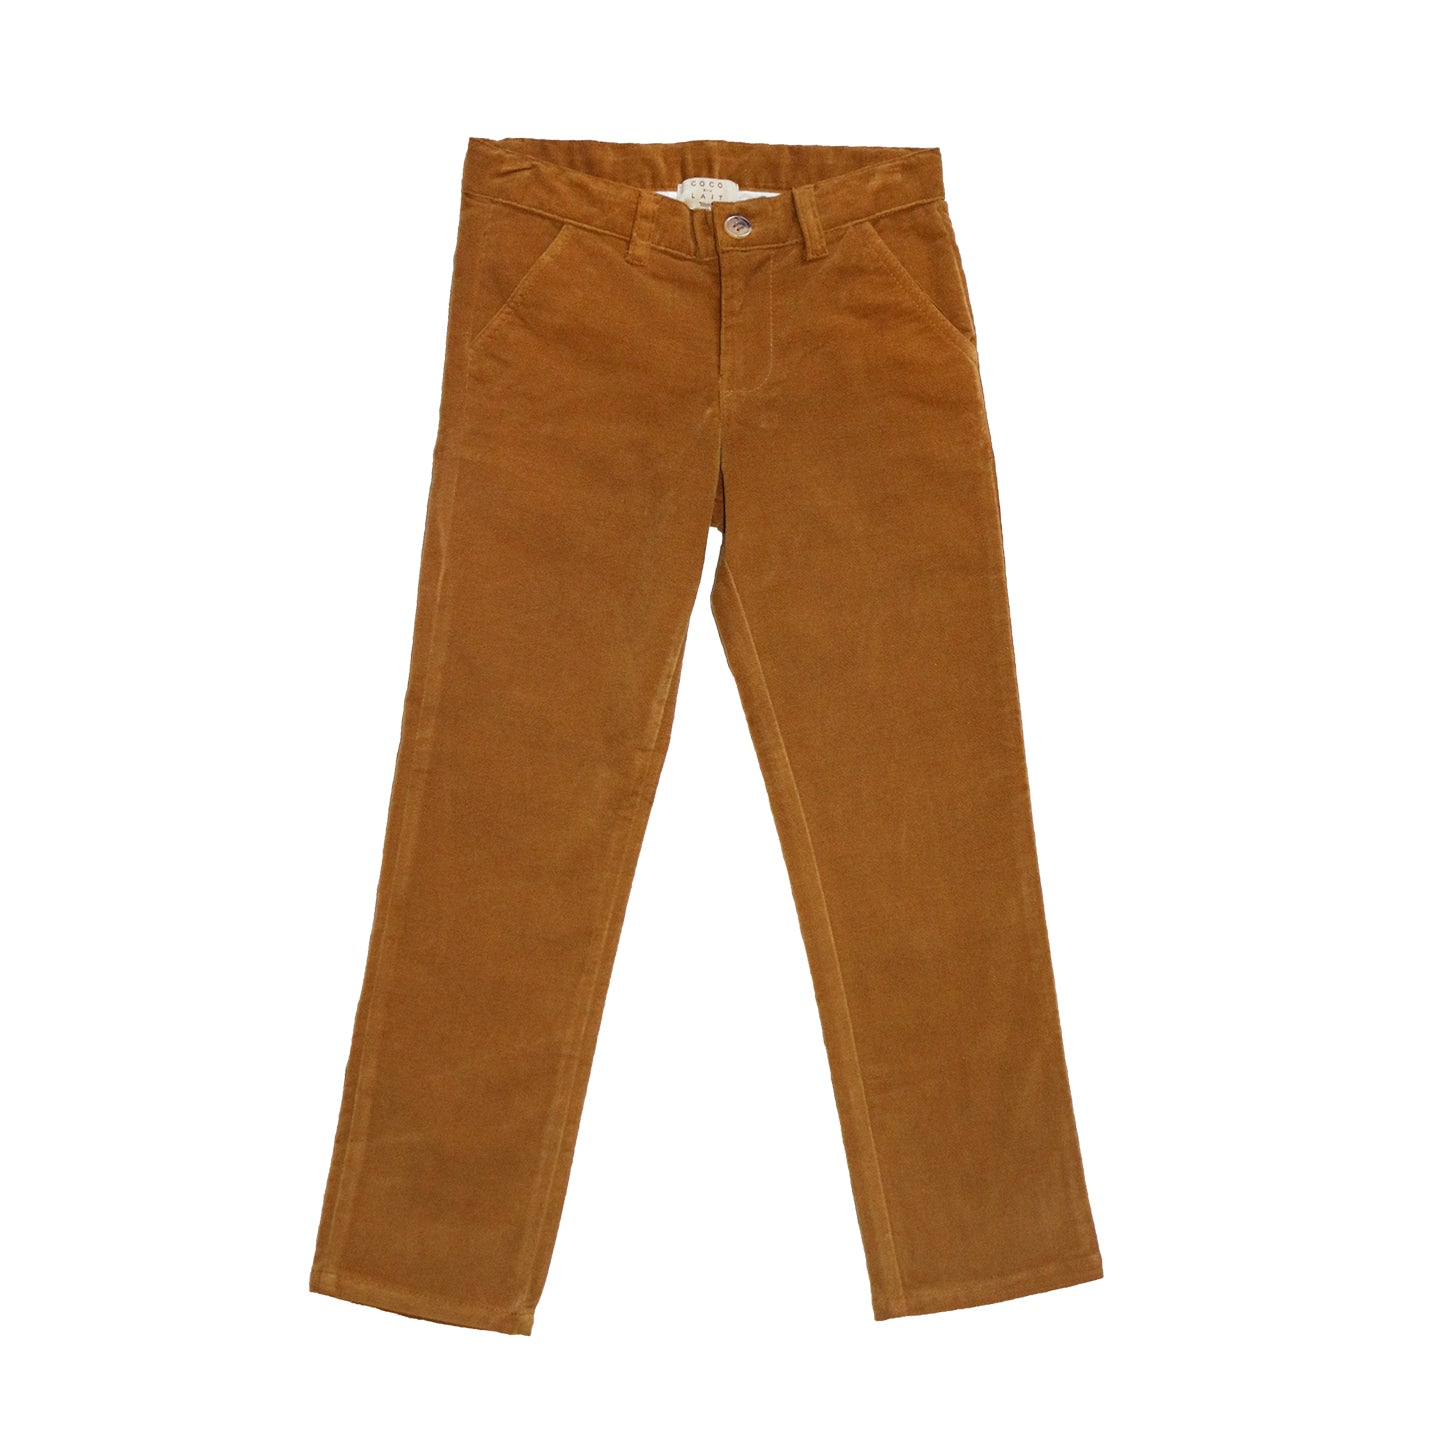 Load image into Gallery viewer, Coco Au Lait MUSTARD VELVETEEN TROUSERS Trousers Golden Brown